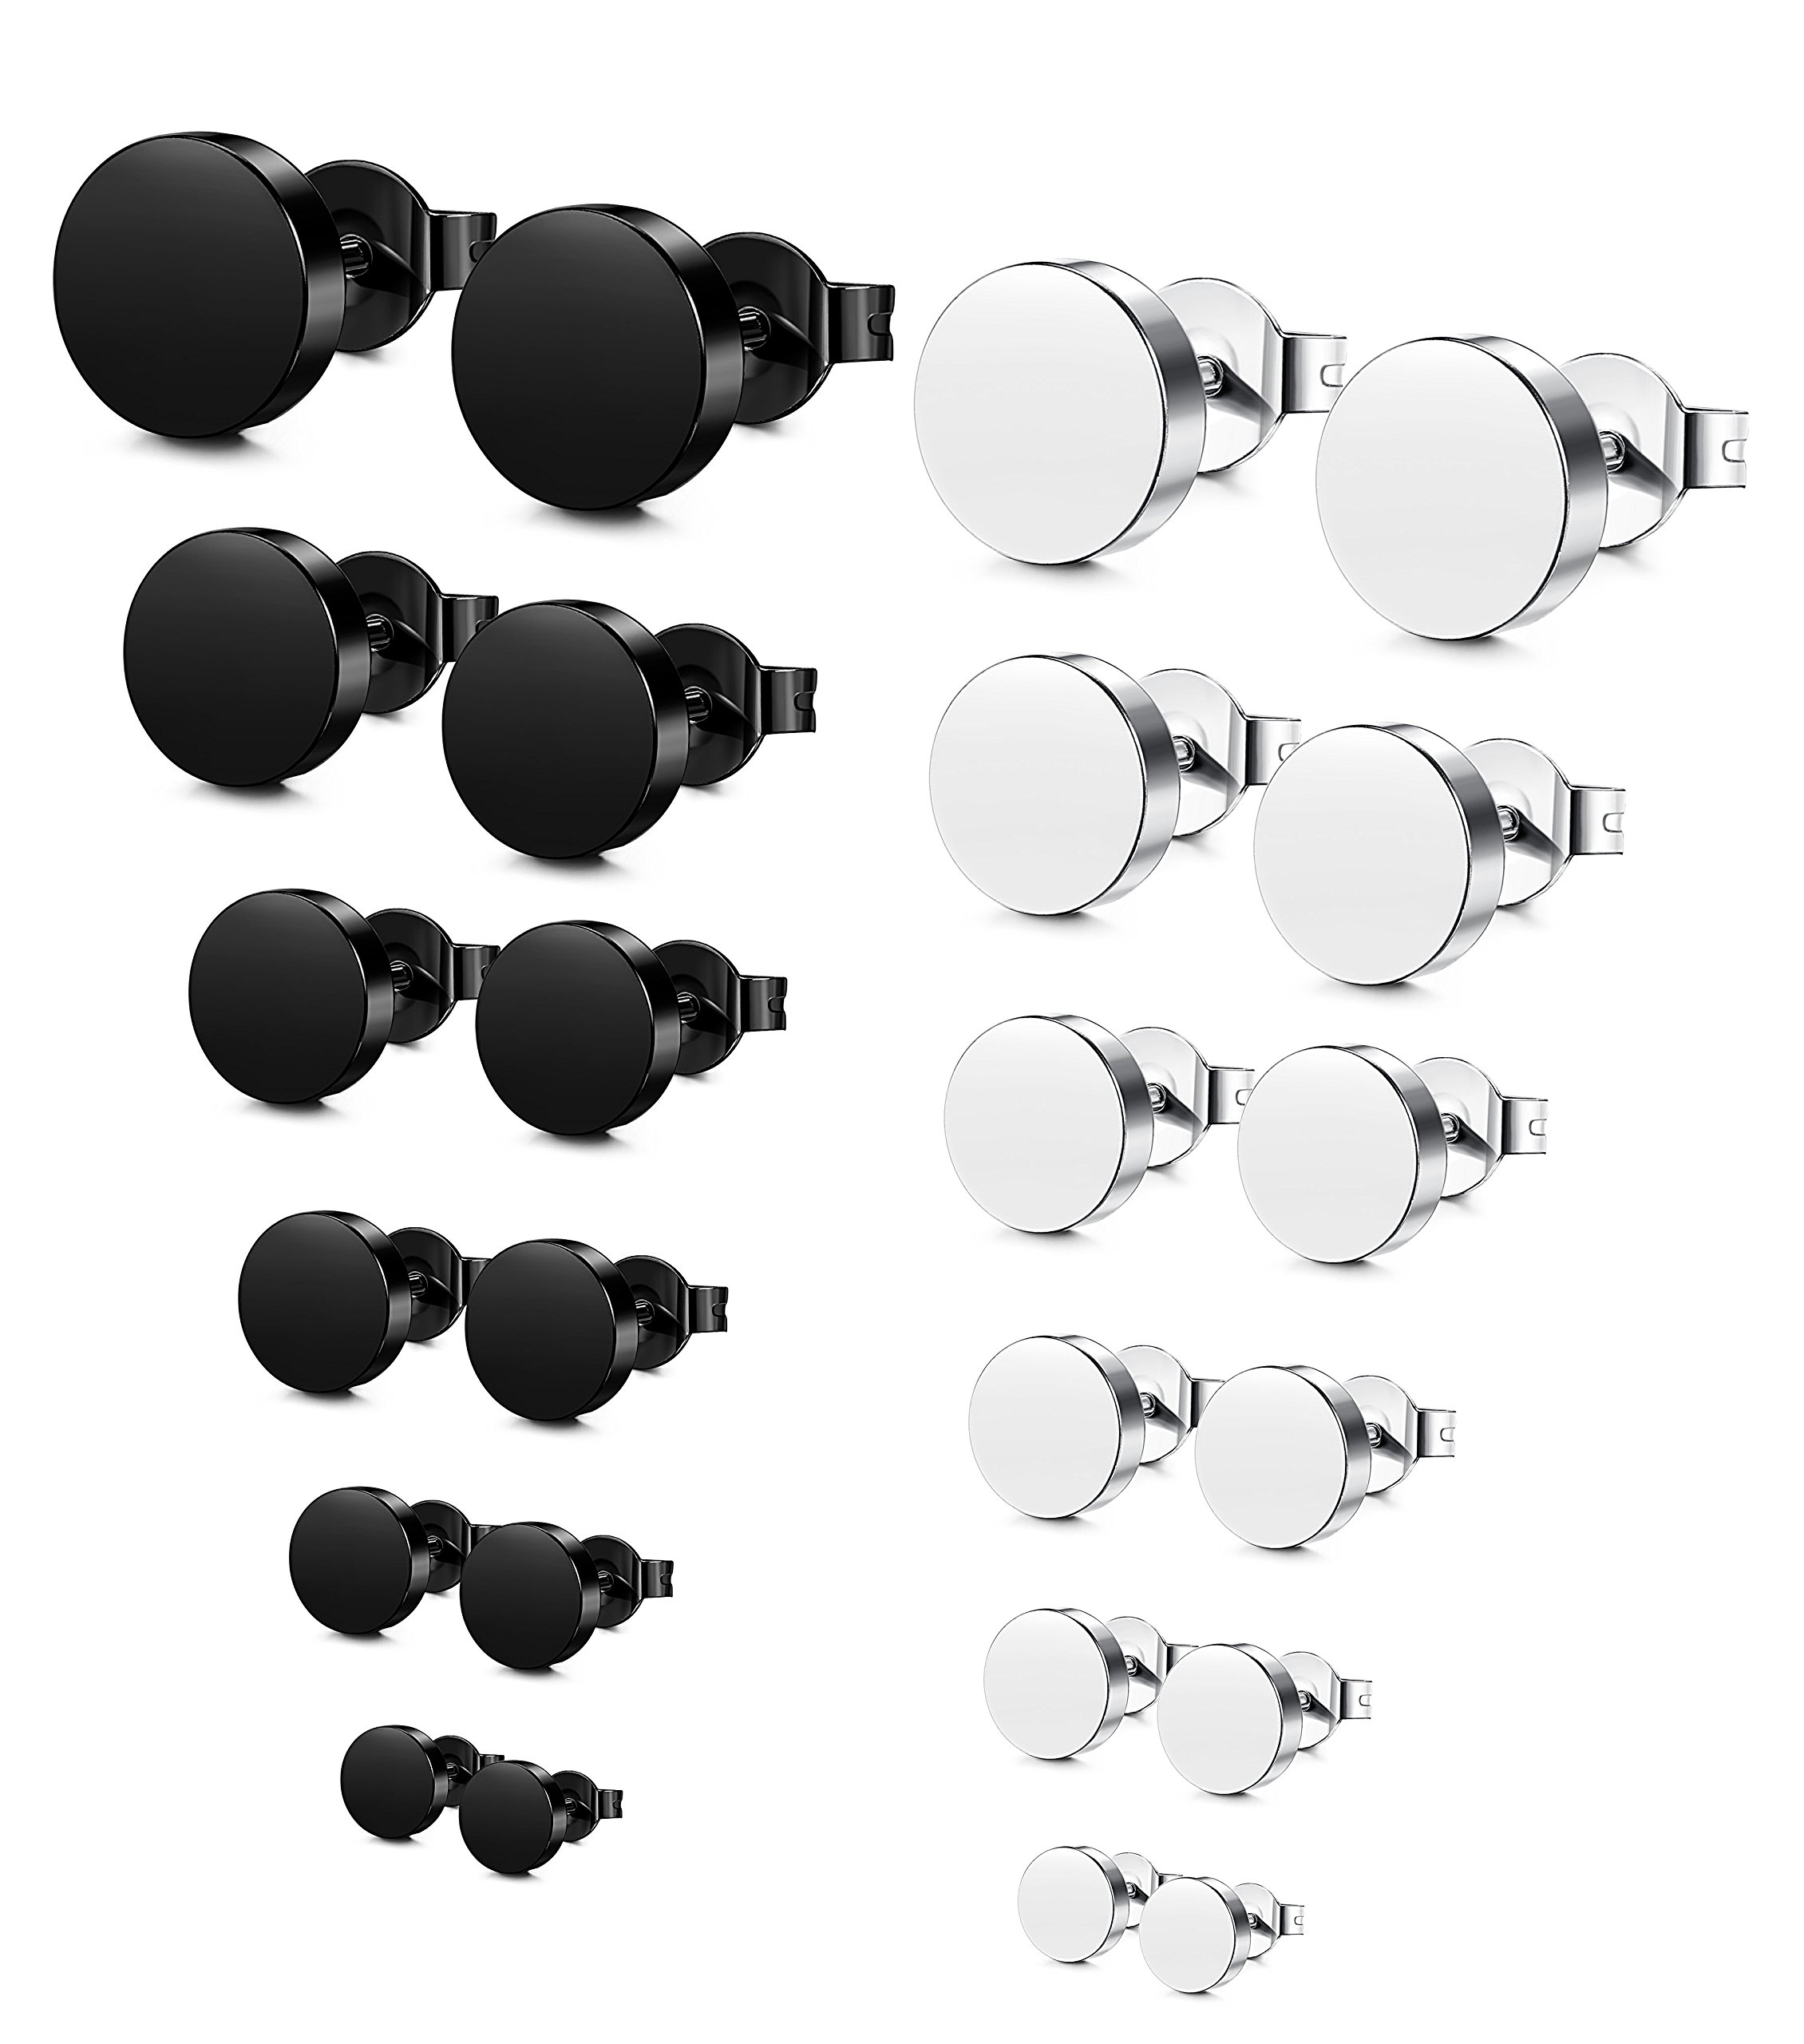 Jstyle Stainless Steel Mens Womens Stud Earrings Pierced Tunnel Black 3-8mm 12 Pairs